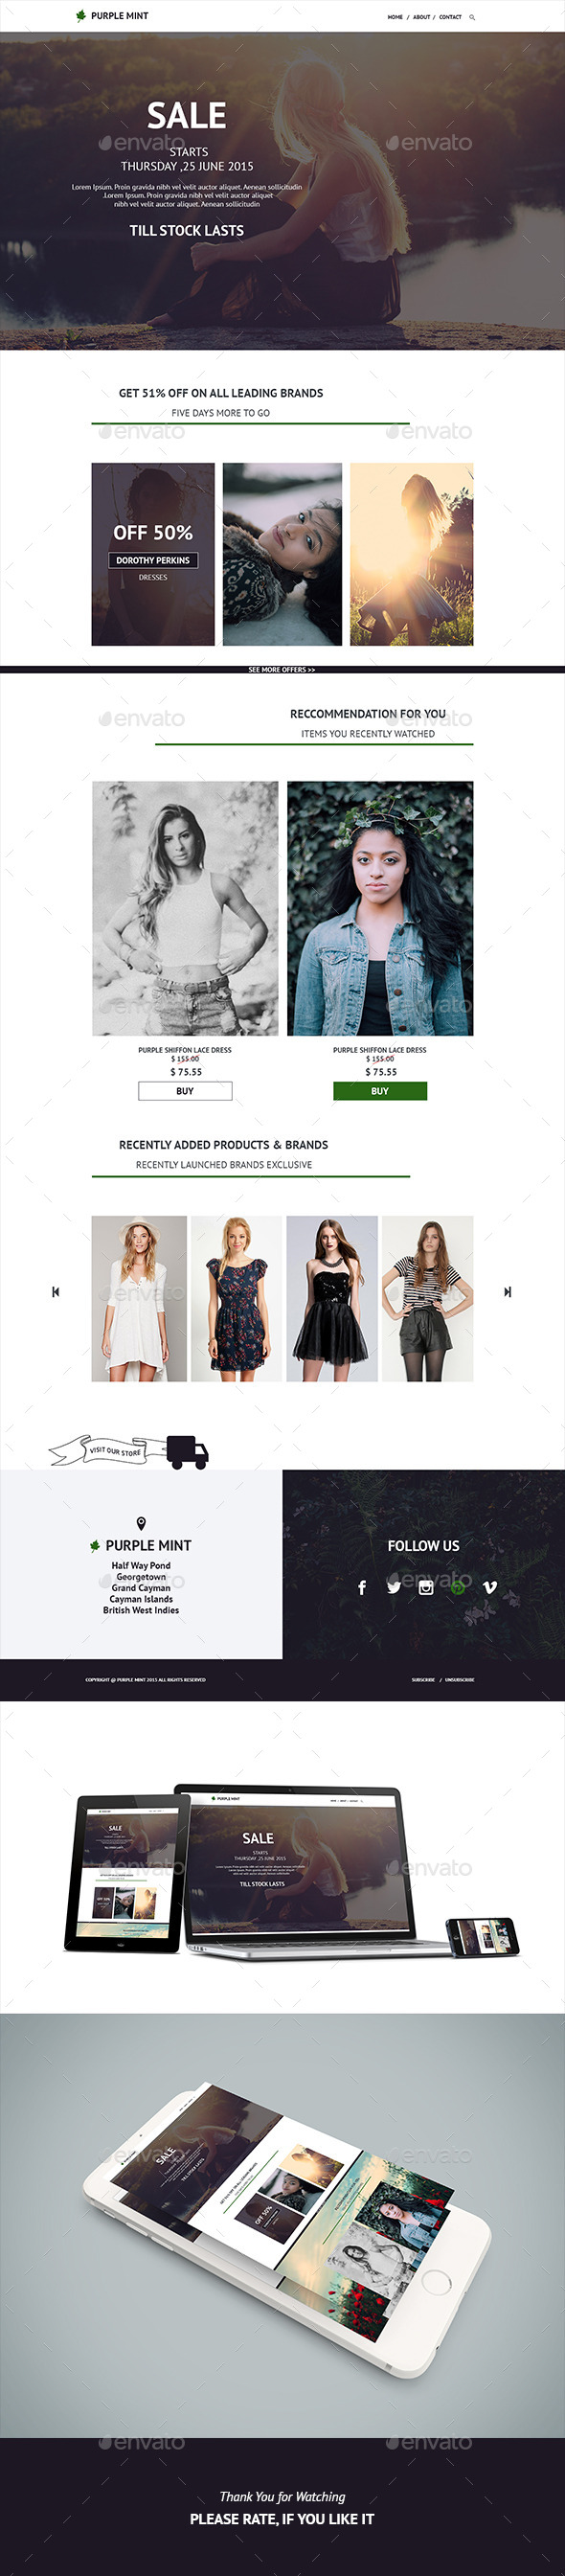 Purple Mint Fashion E-Newsletter  - E-newsletters Web Elements